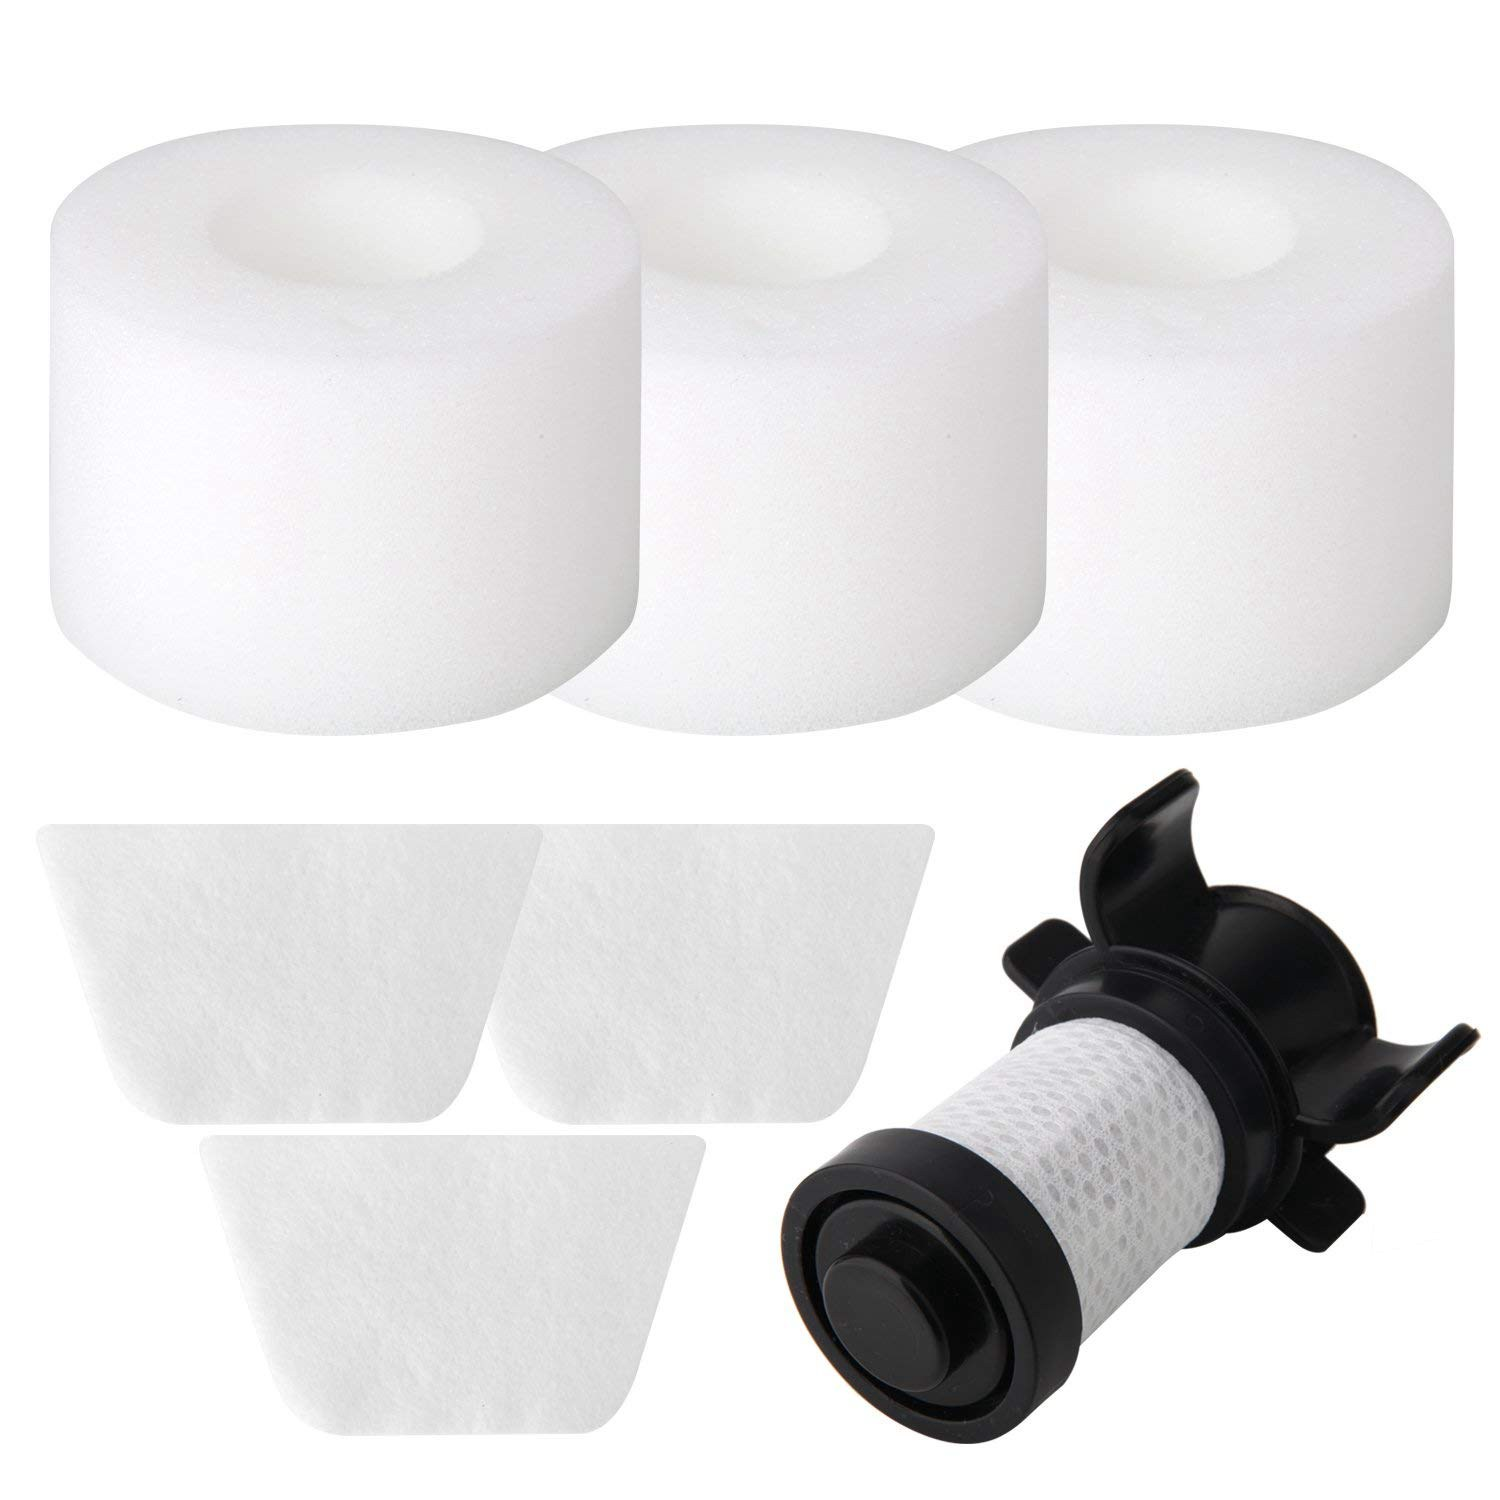 SANQ Filters for Shark IONFlex DuoClean Vacuum IF100 IF150 IF160 IF170 IF180 IF200 IF201, IF202 IF205 IF251 IF252 IR70 IR100 I